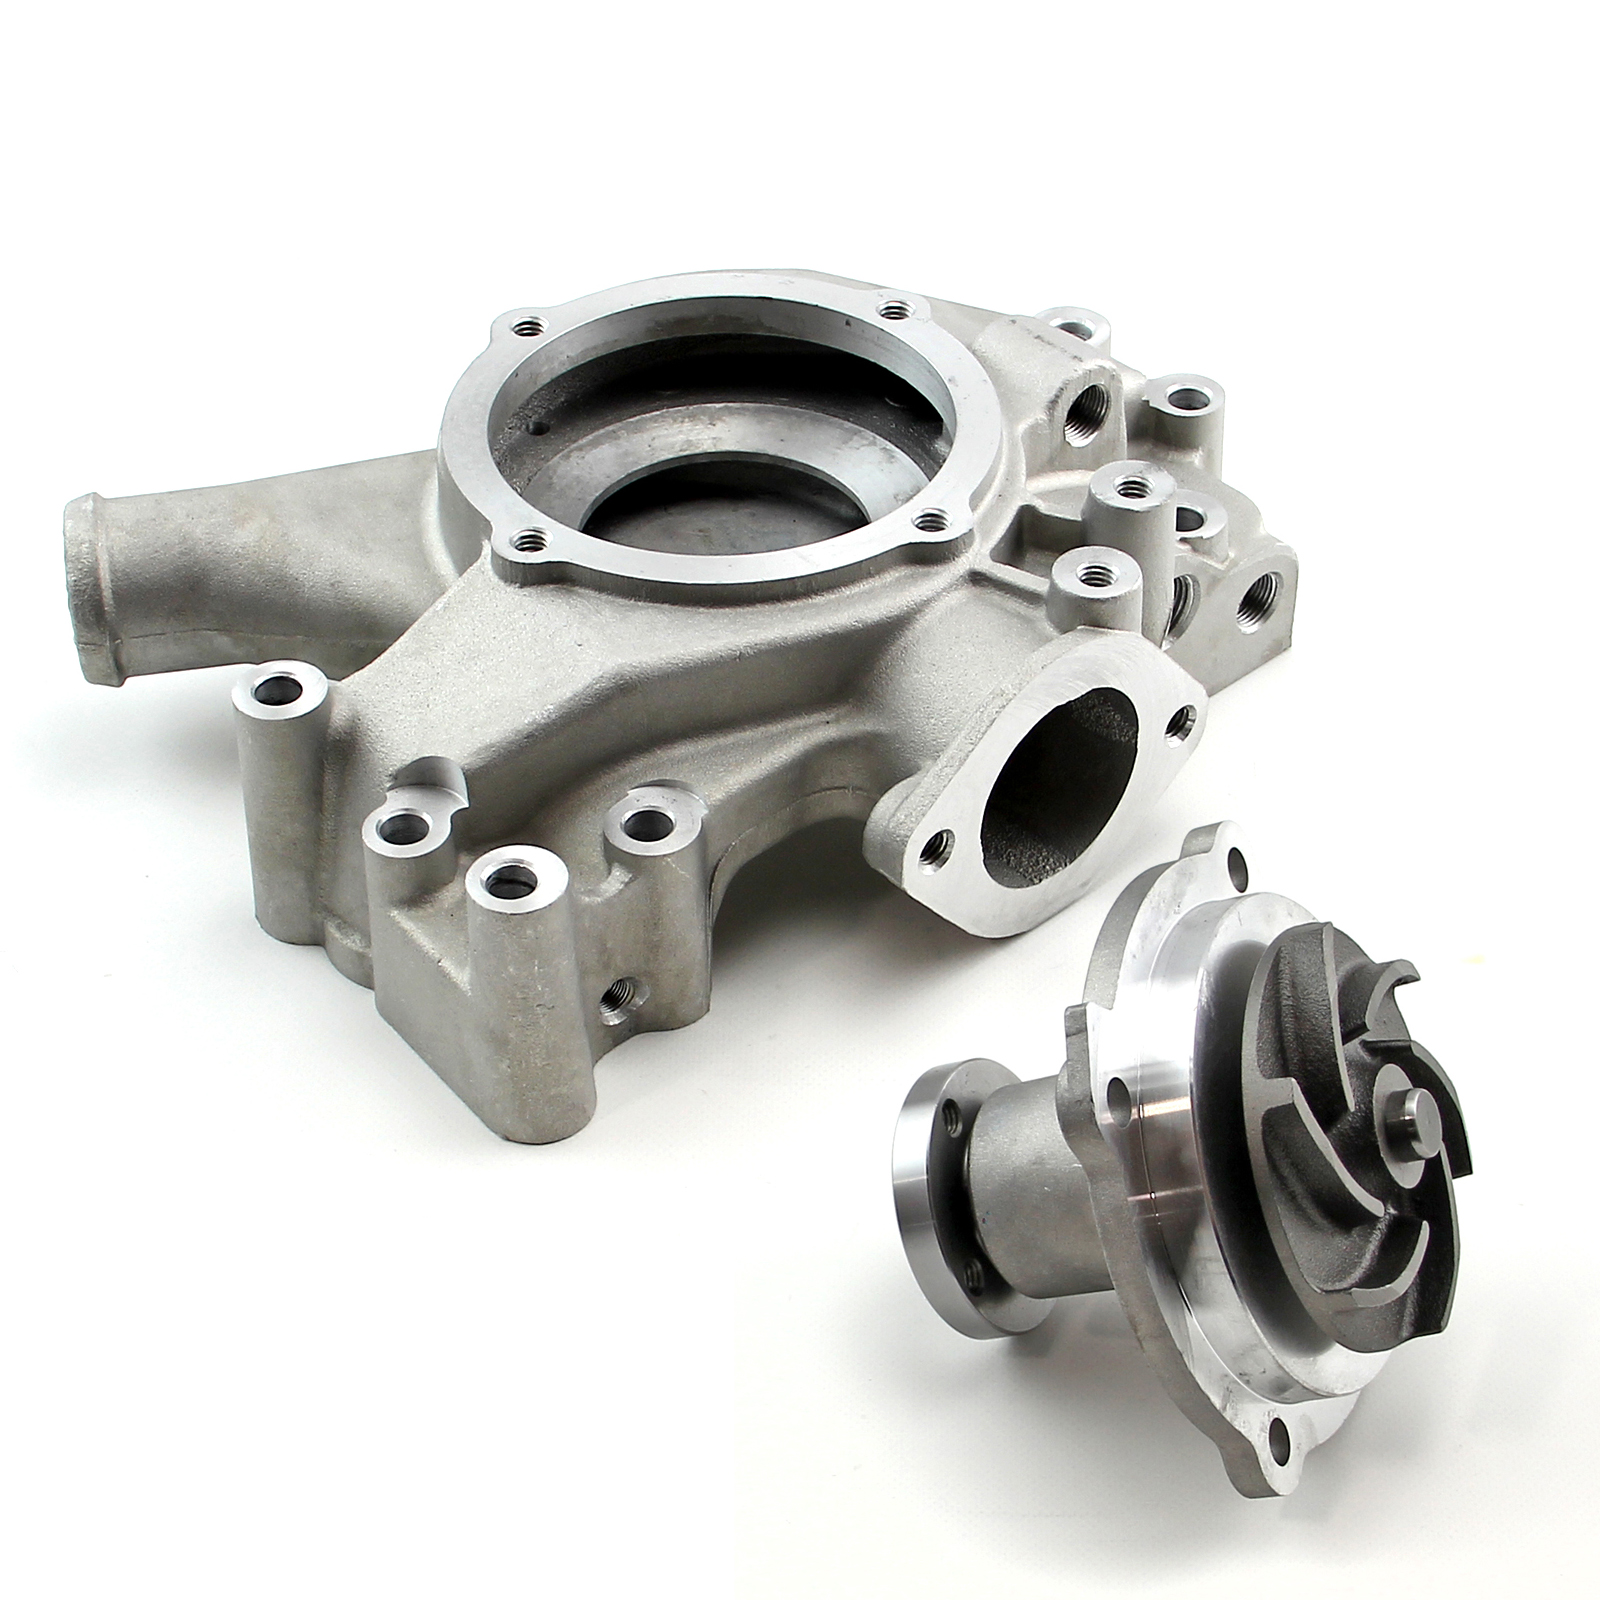 Chrysler Mopar BB 360 383 440 High Volume Aluminum Water Pump